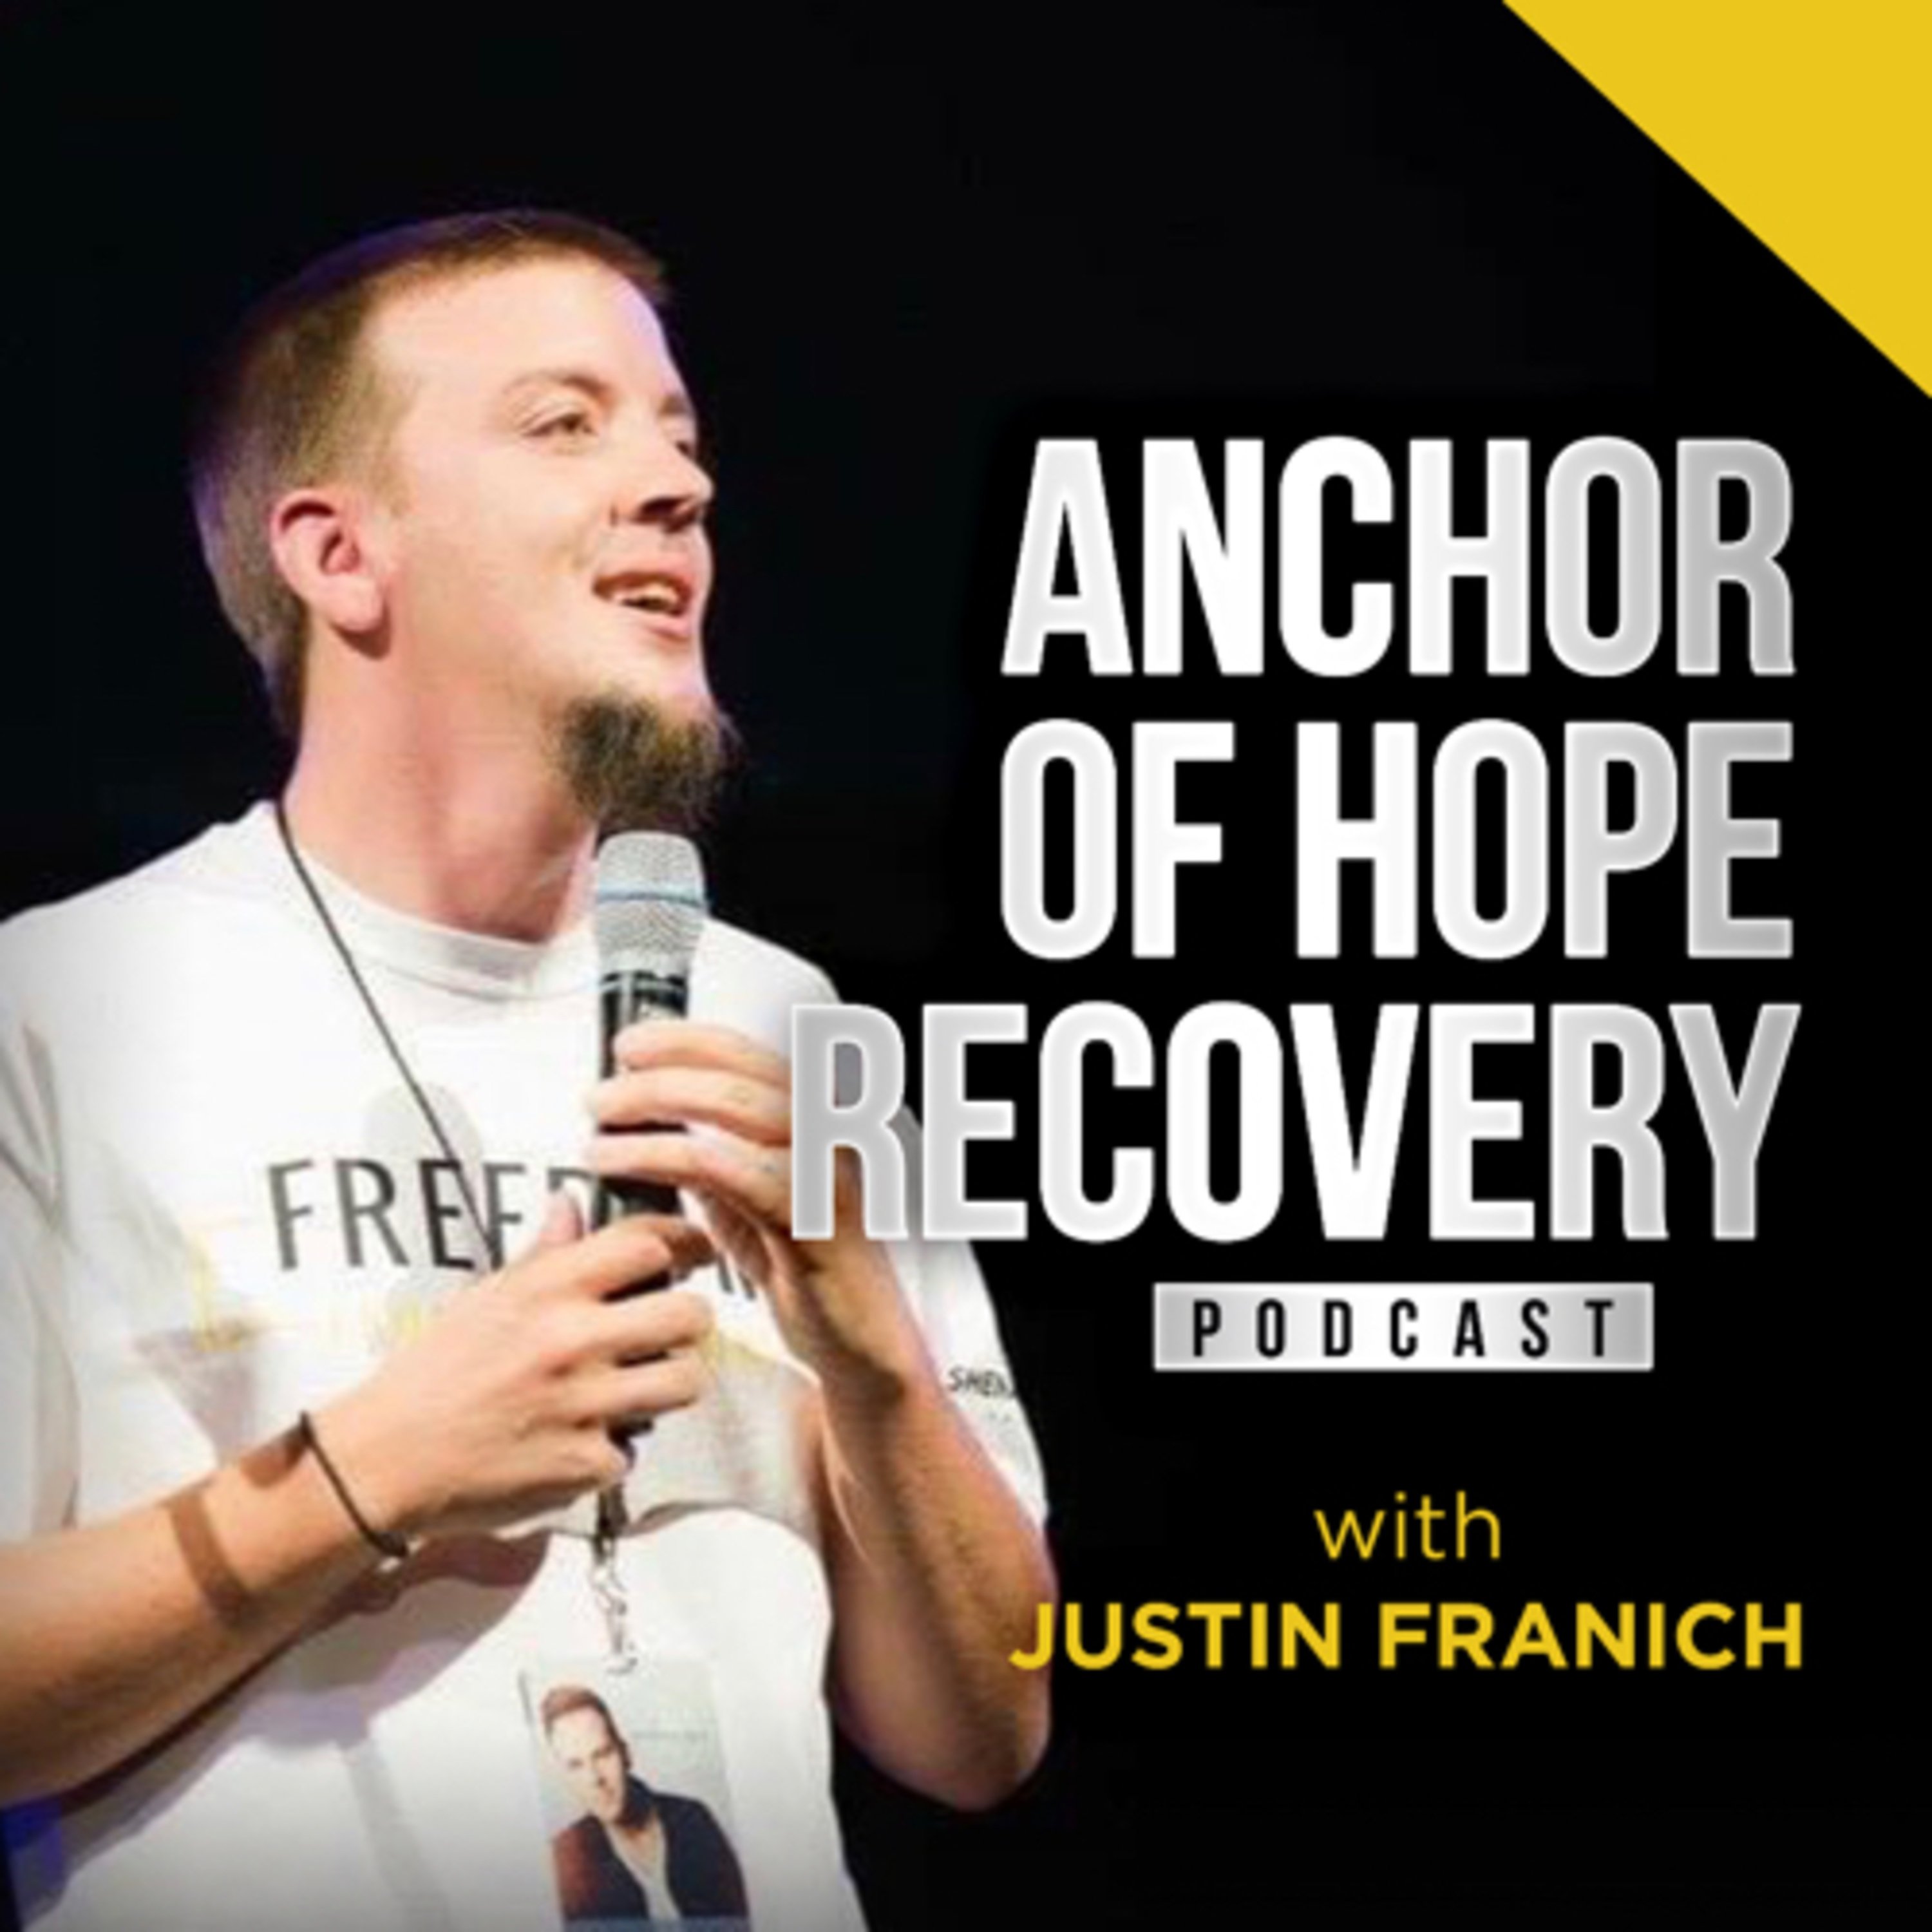 Anchor of Hope Recovery Podcast with Justin Franich